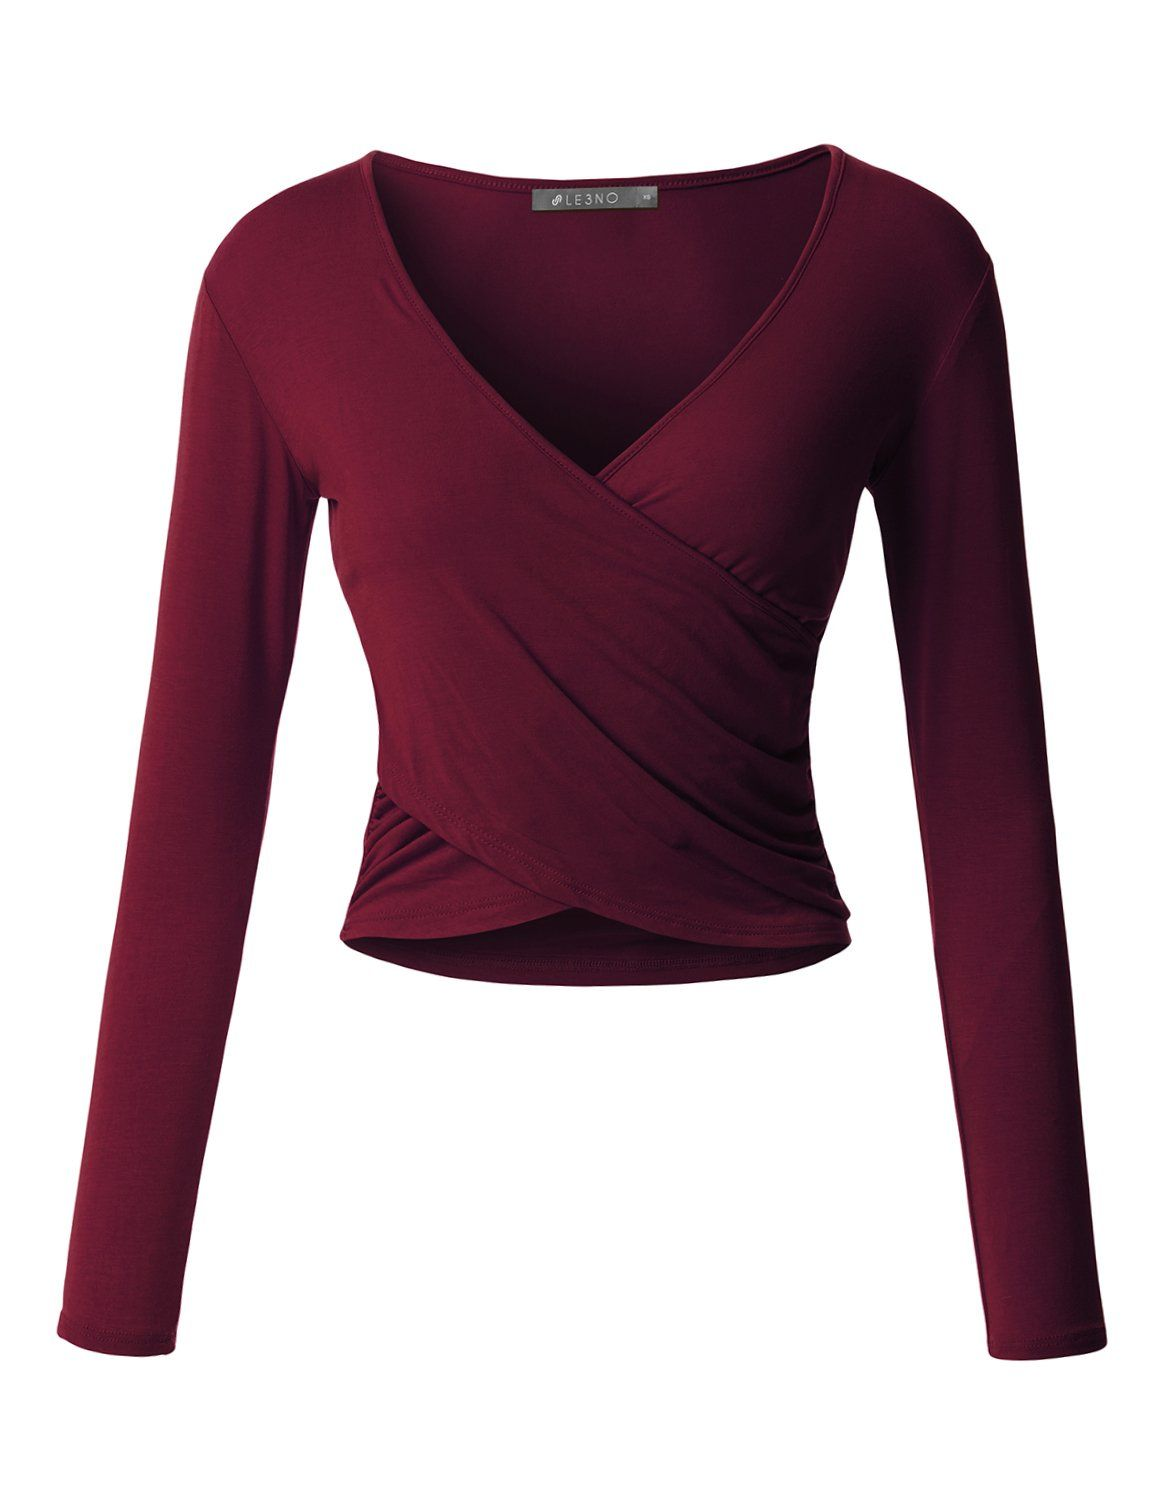 352a697b This lightweight long sleeve crop top is perfect for any occasion. You can  wear it casually with high waisted denim pants or dress it up with a fitted  midi ...